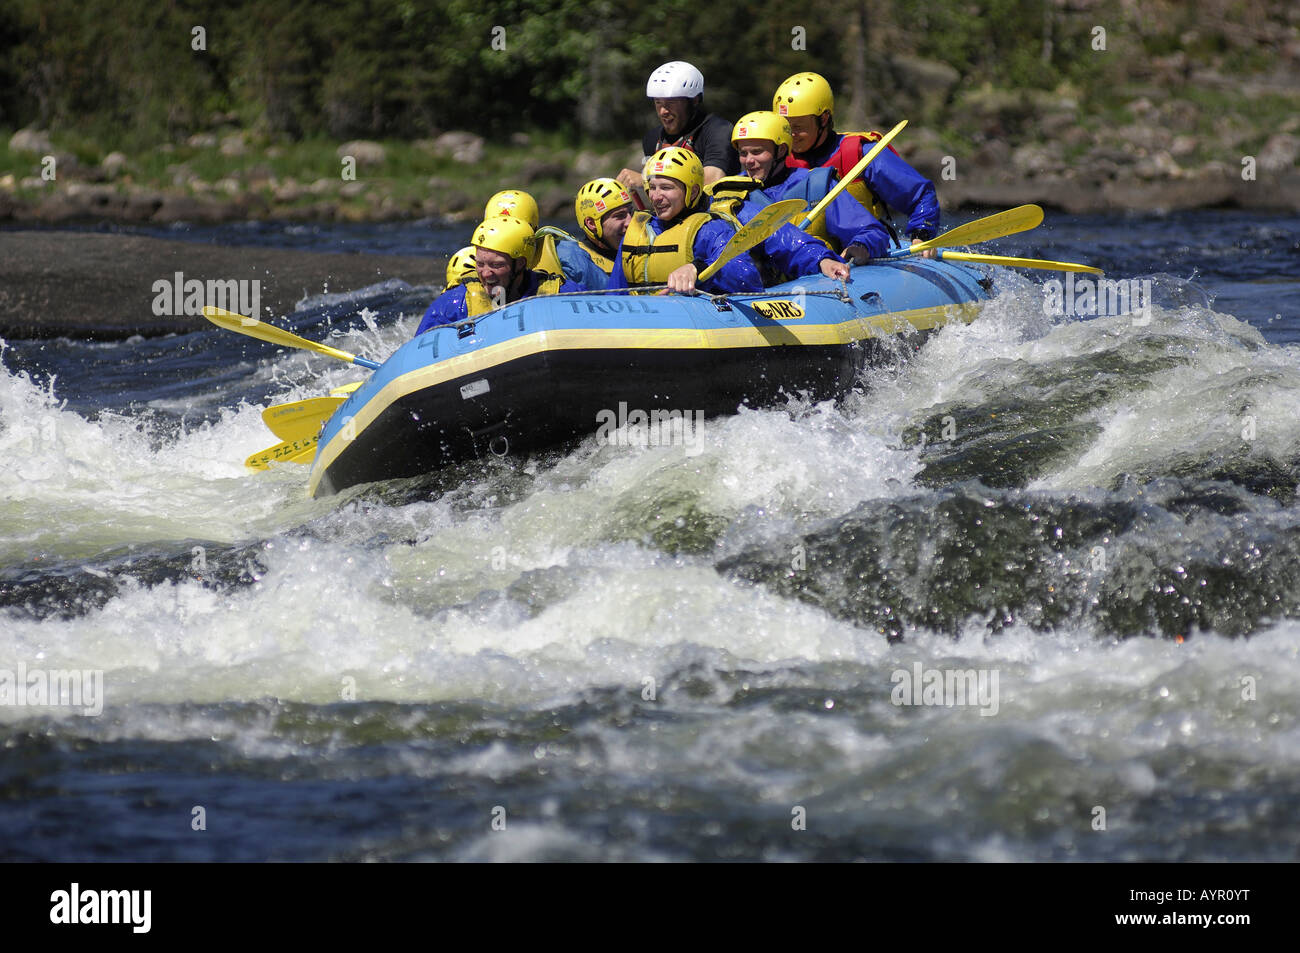 Whitewater rafting, Telemark, Norway - Stock Image